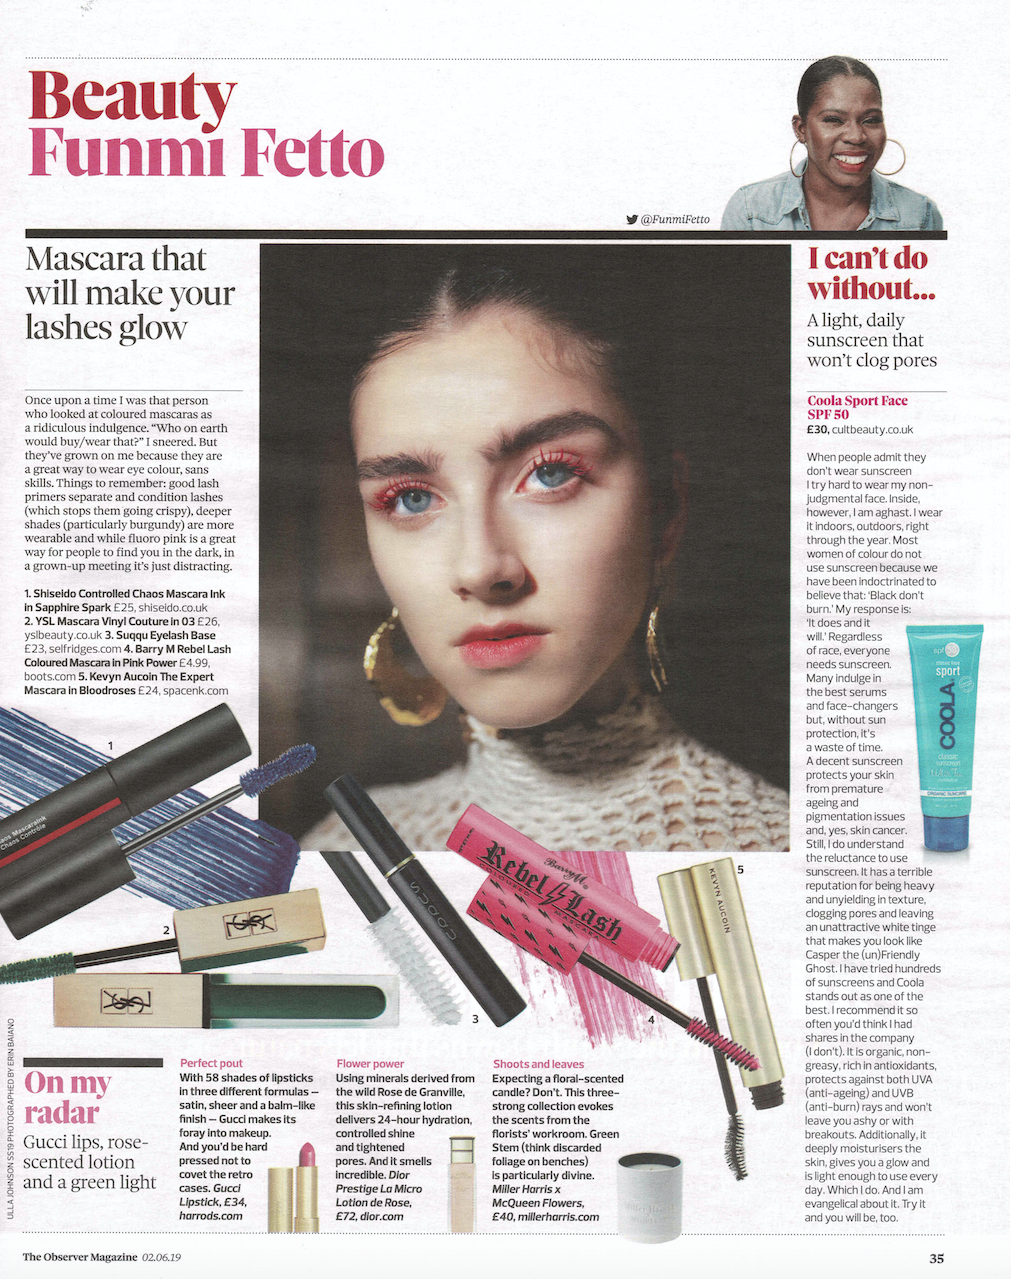 The Observer, 2nd June (Classic Face Sport SPF 50) 2.png